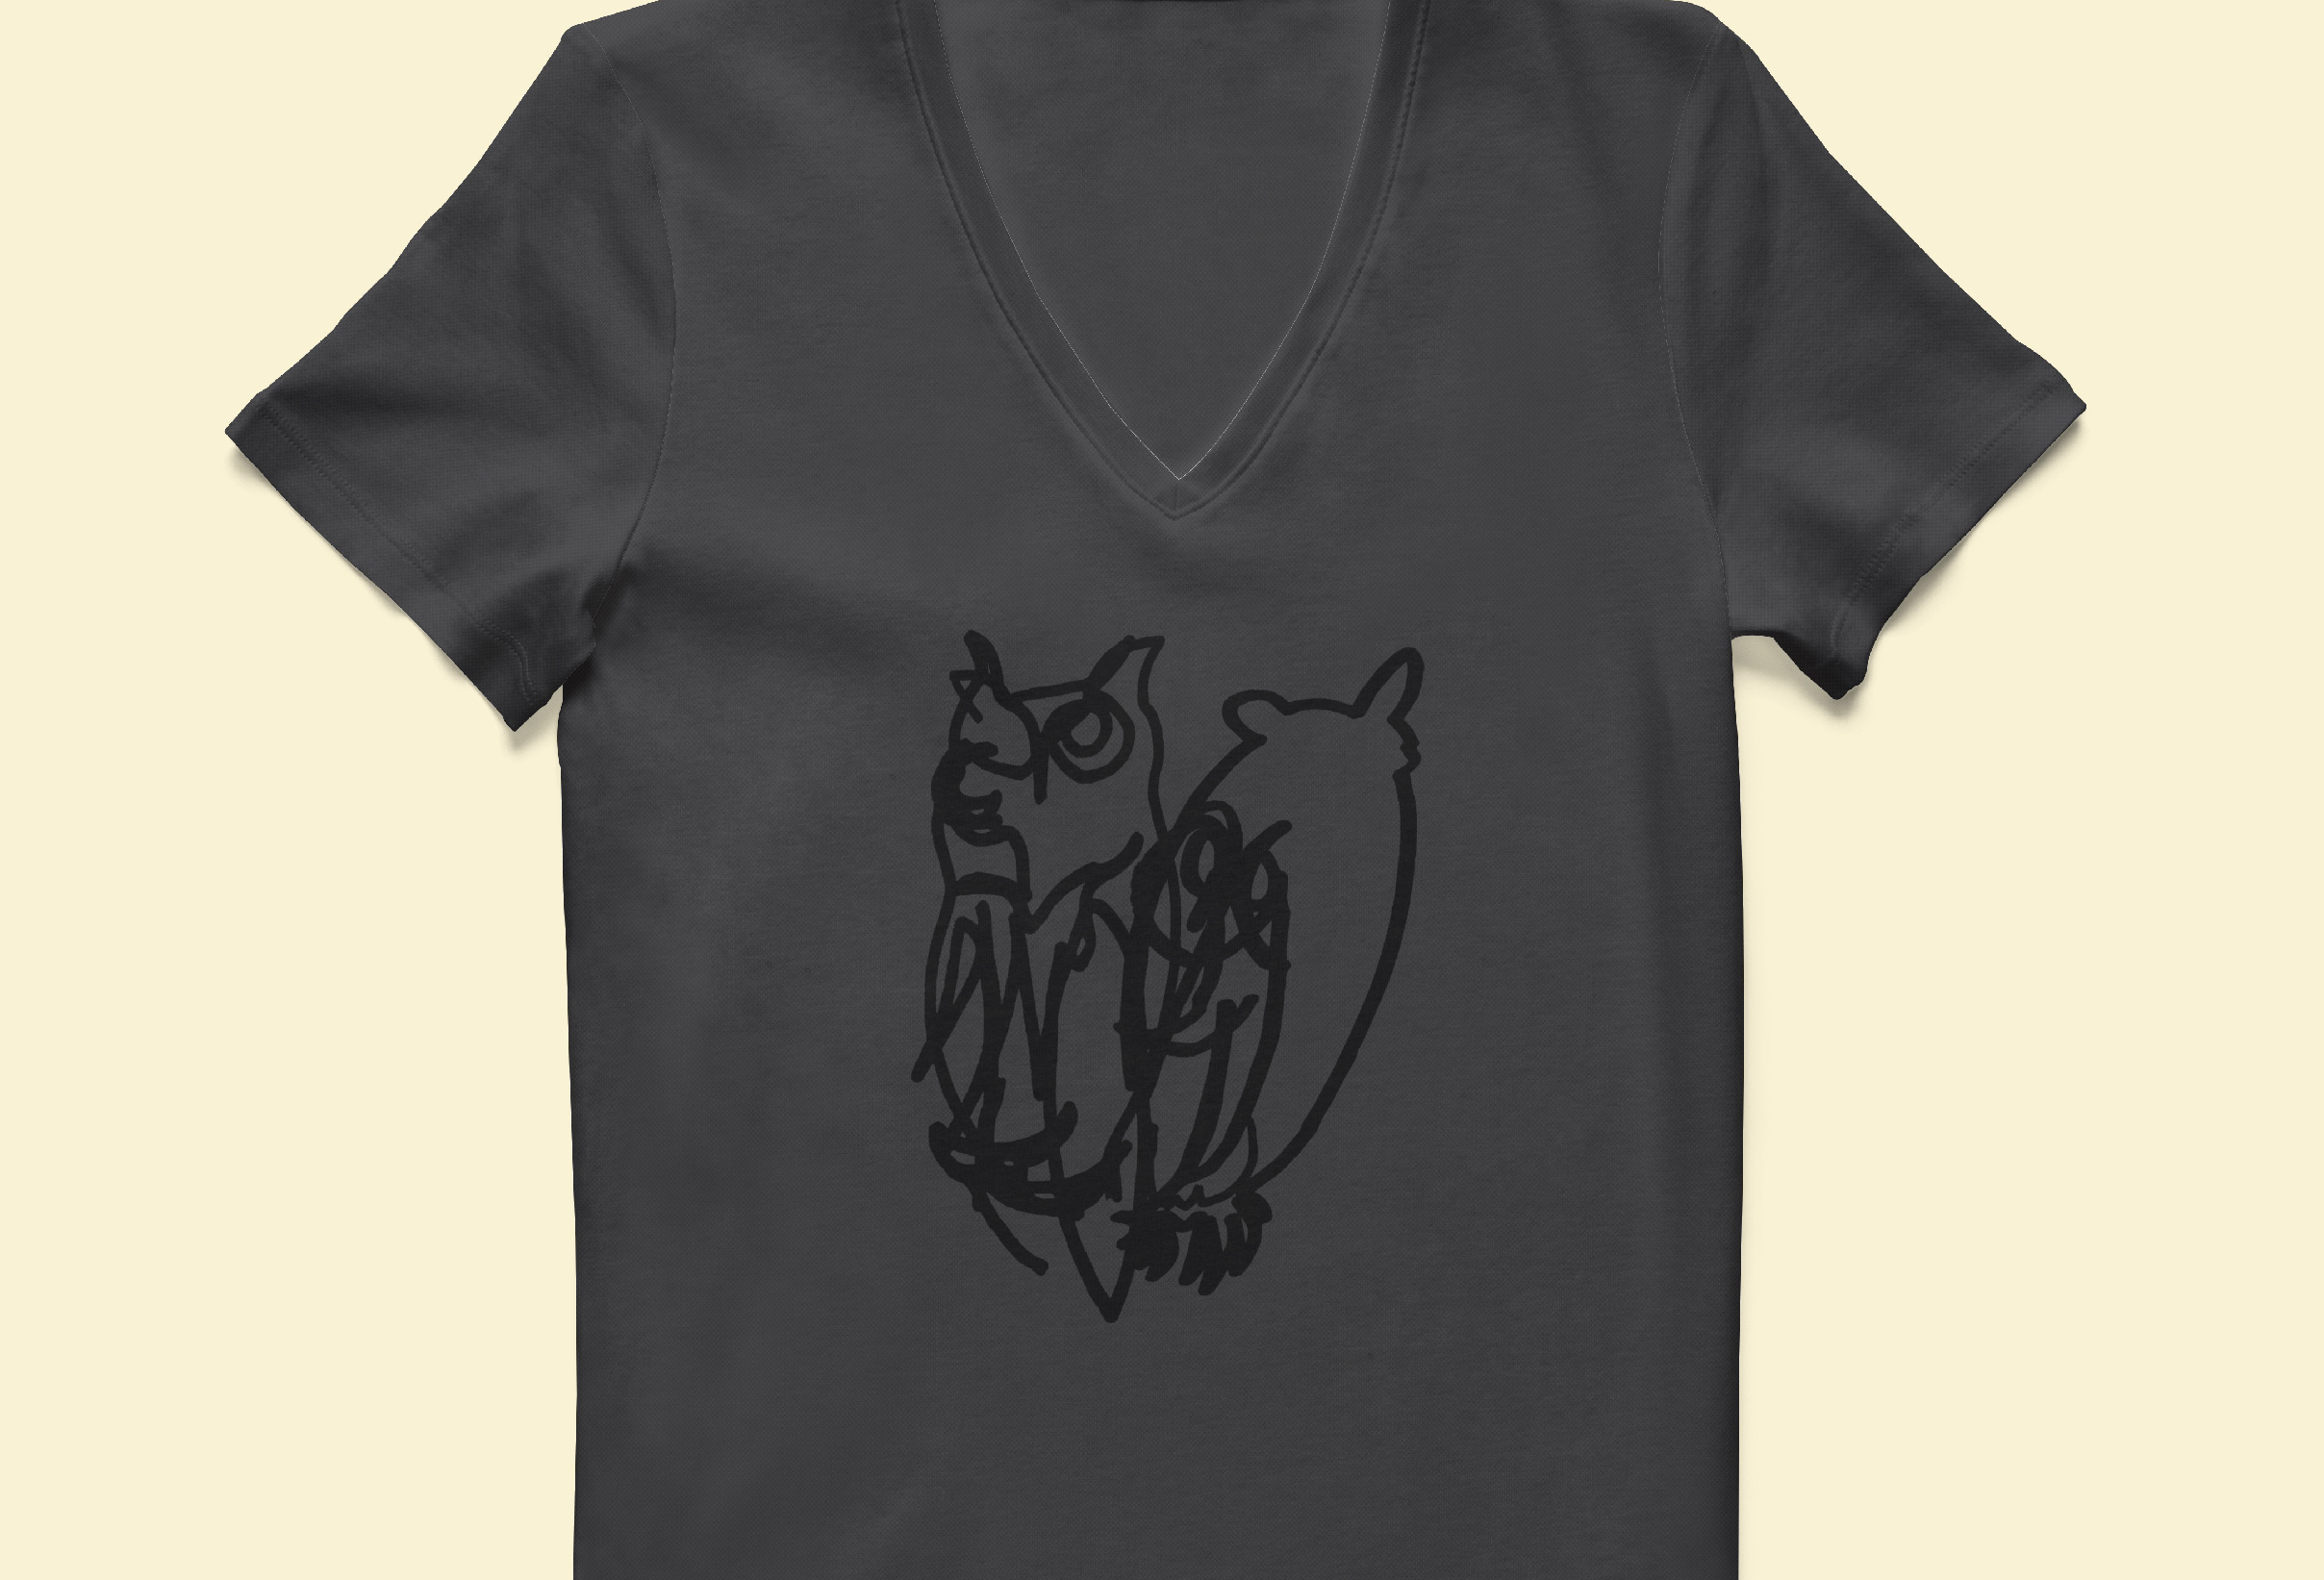 The Owls on Staff Shirts.